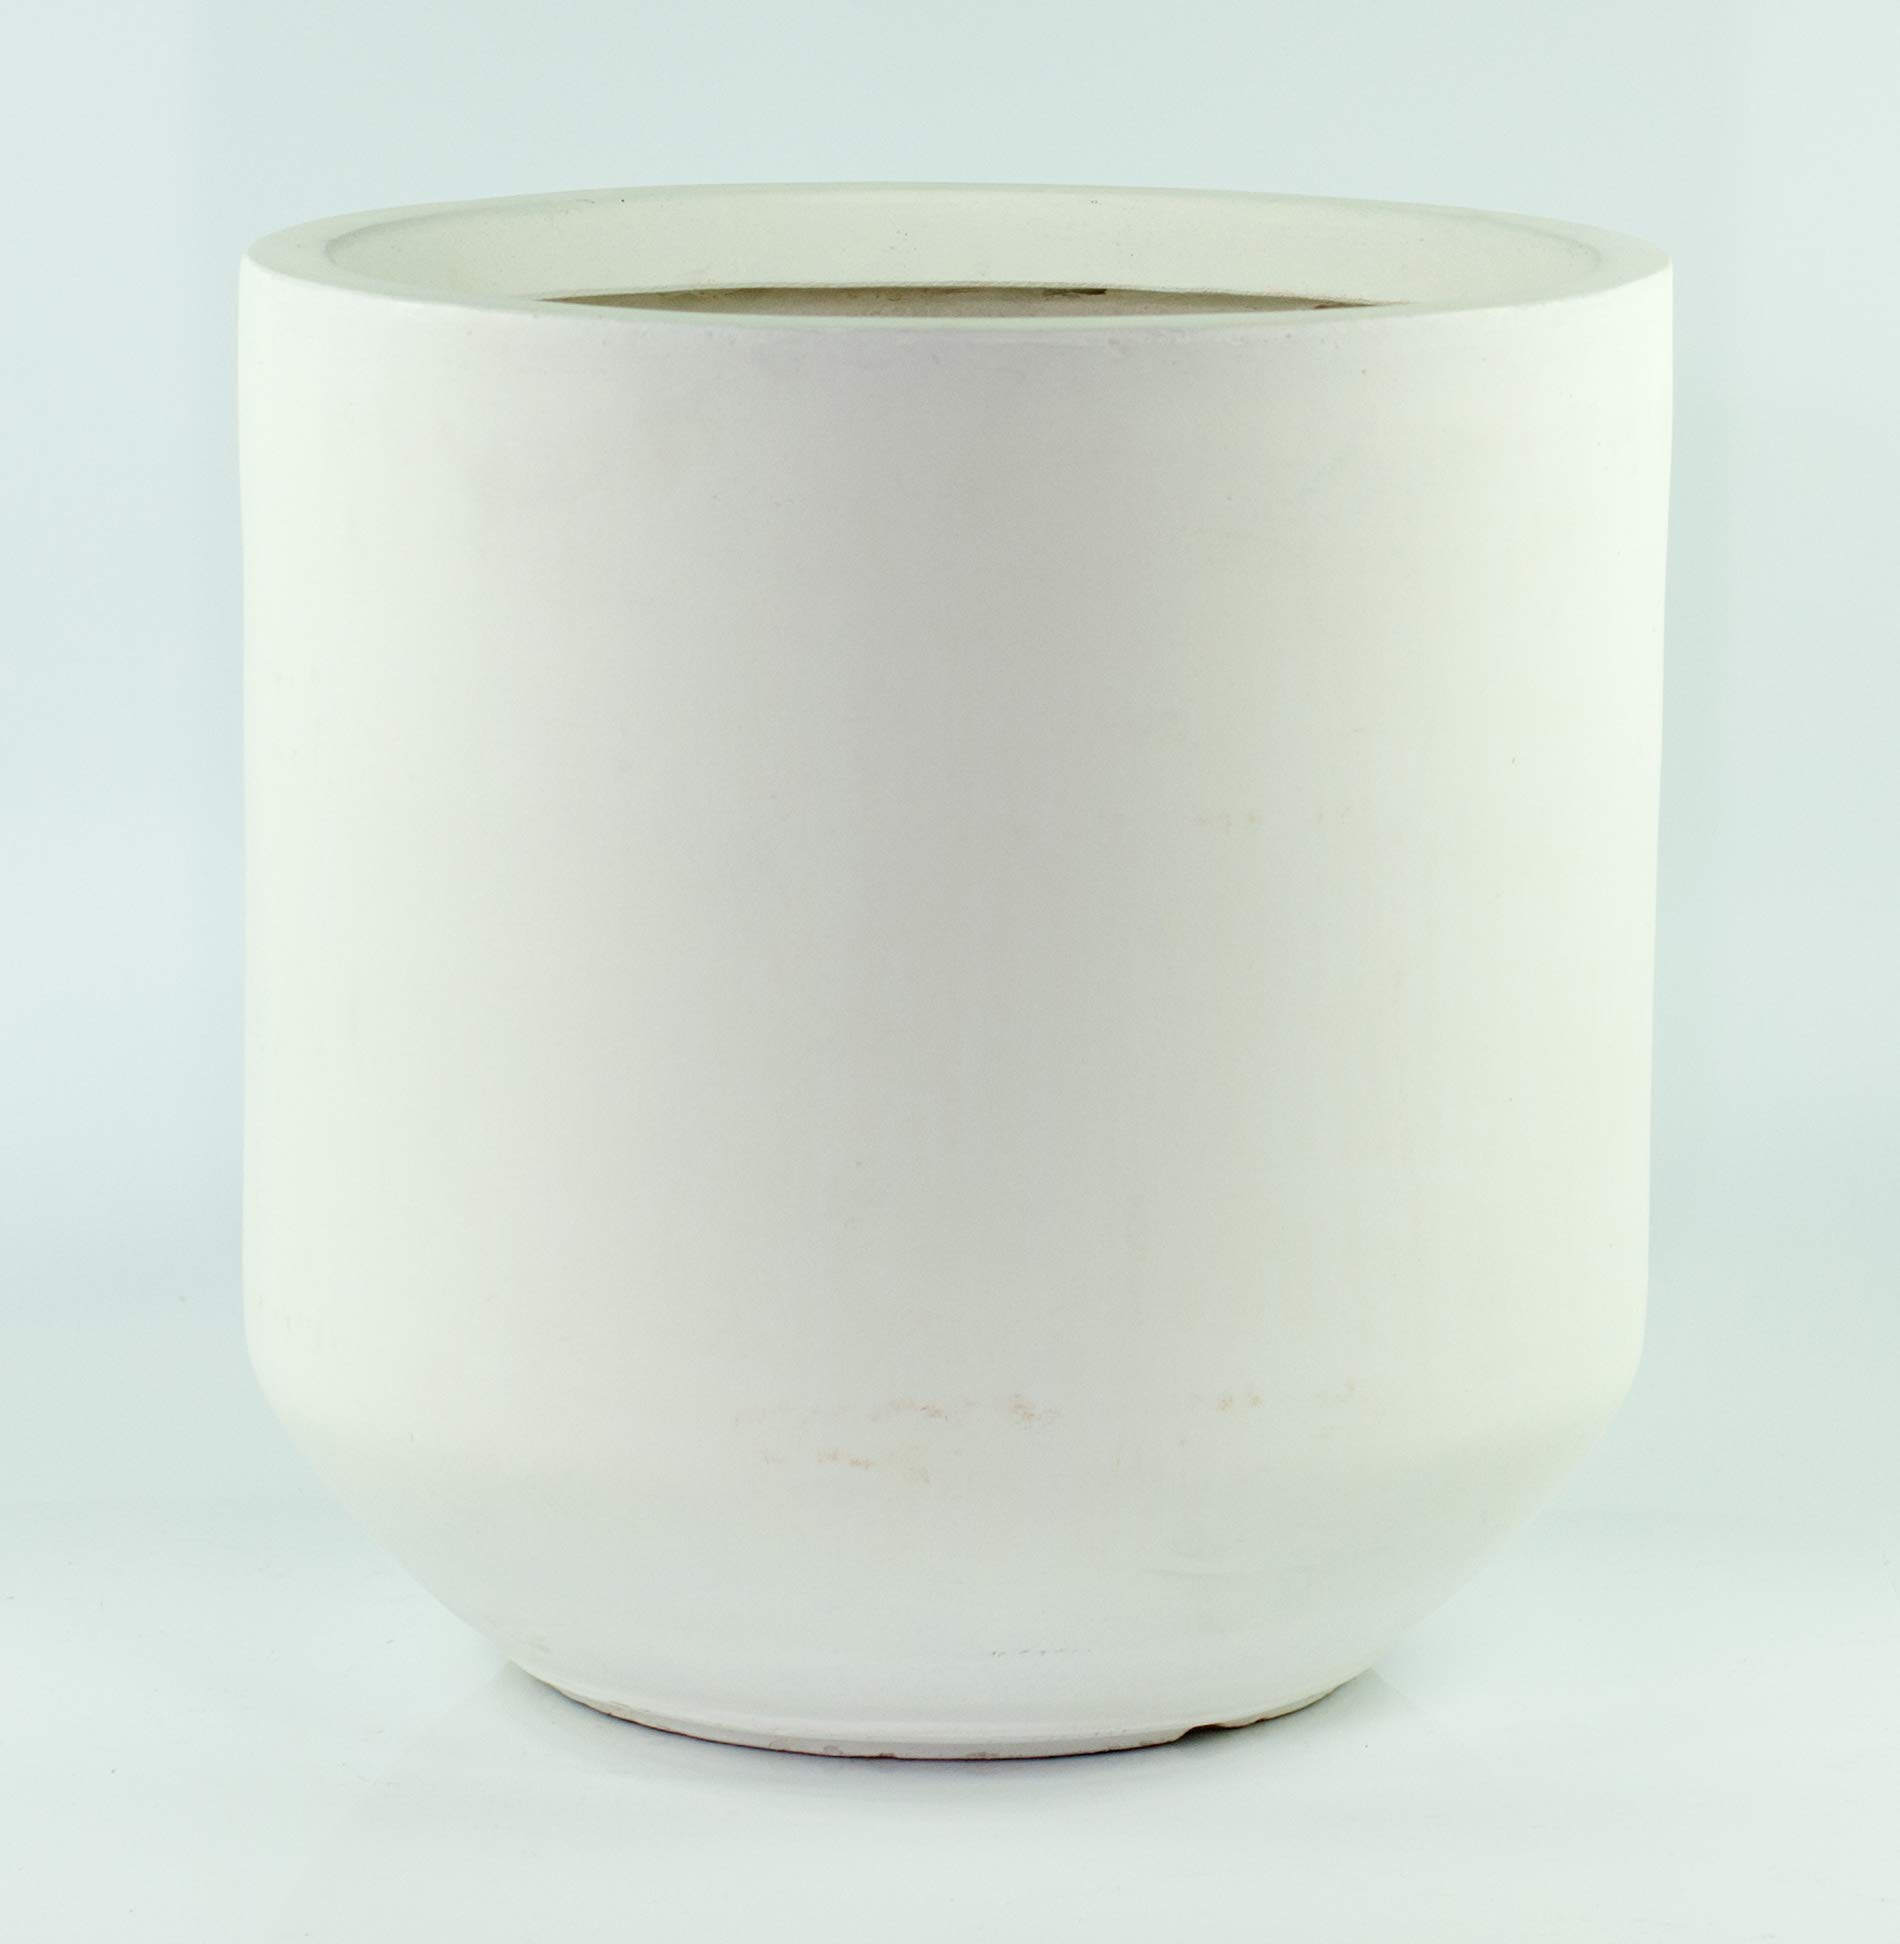 UPshining FXXL01 Fiber Clay White Extra Large 16'' Planter/Cylinder Pot/Mid